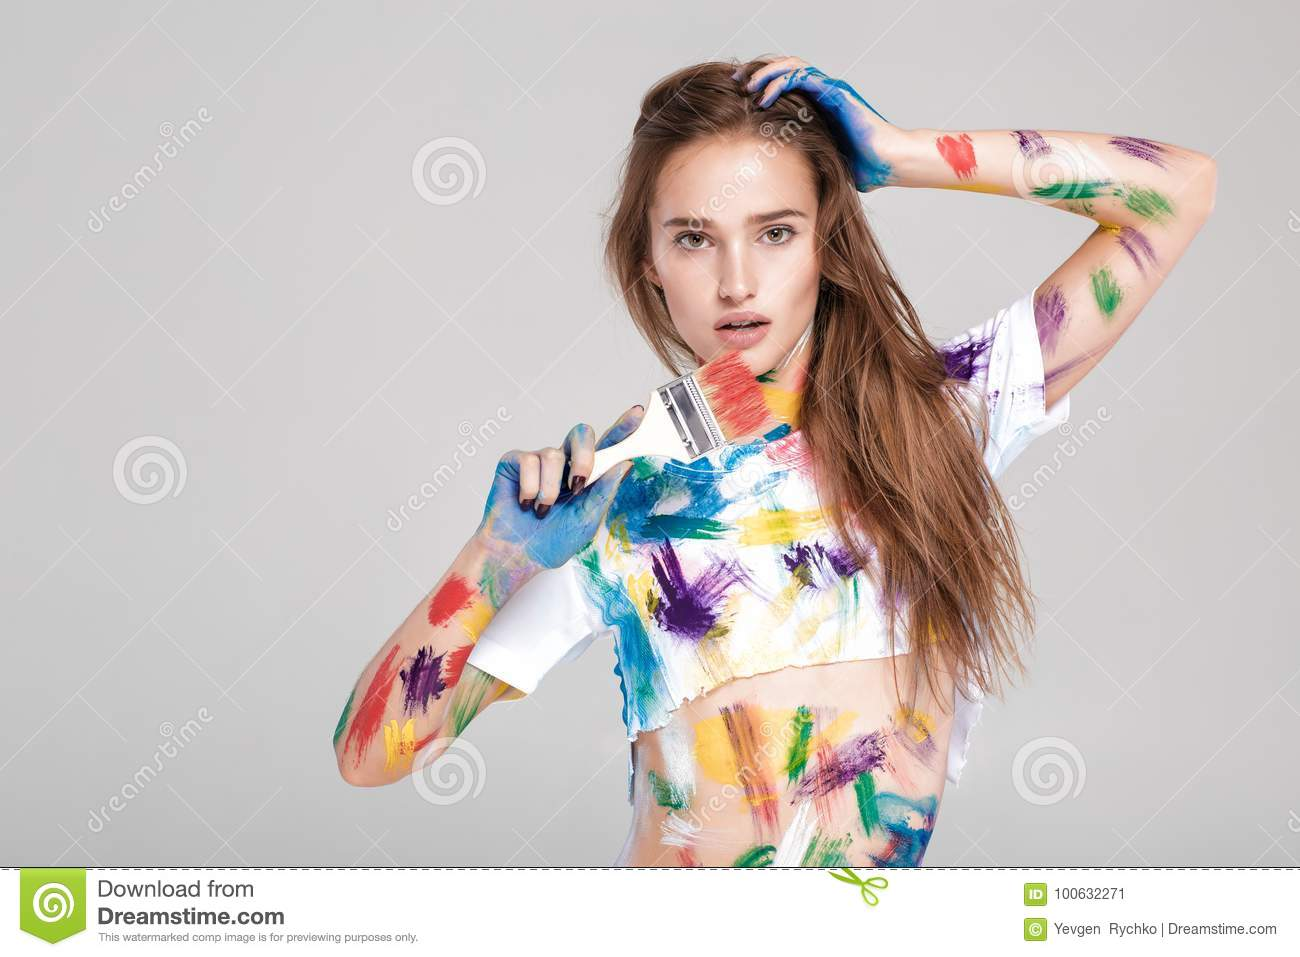 Young woman smeared in multicolored paint.